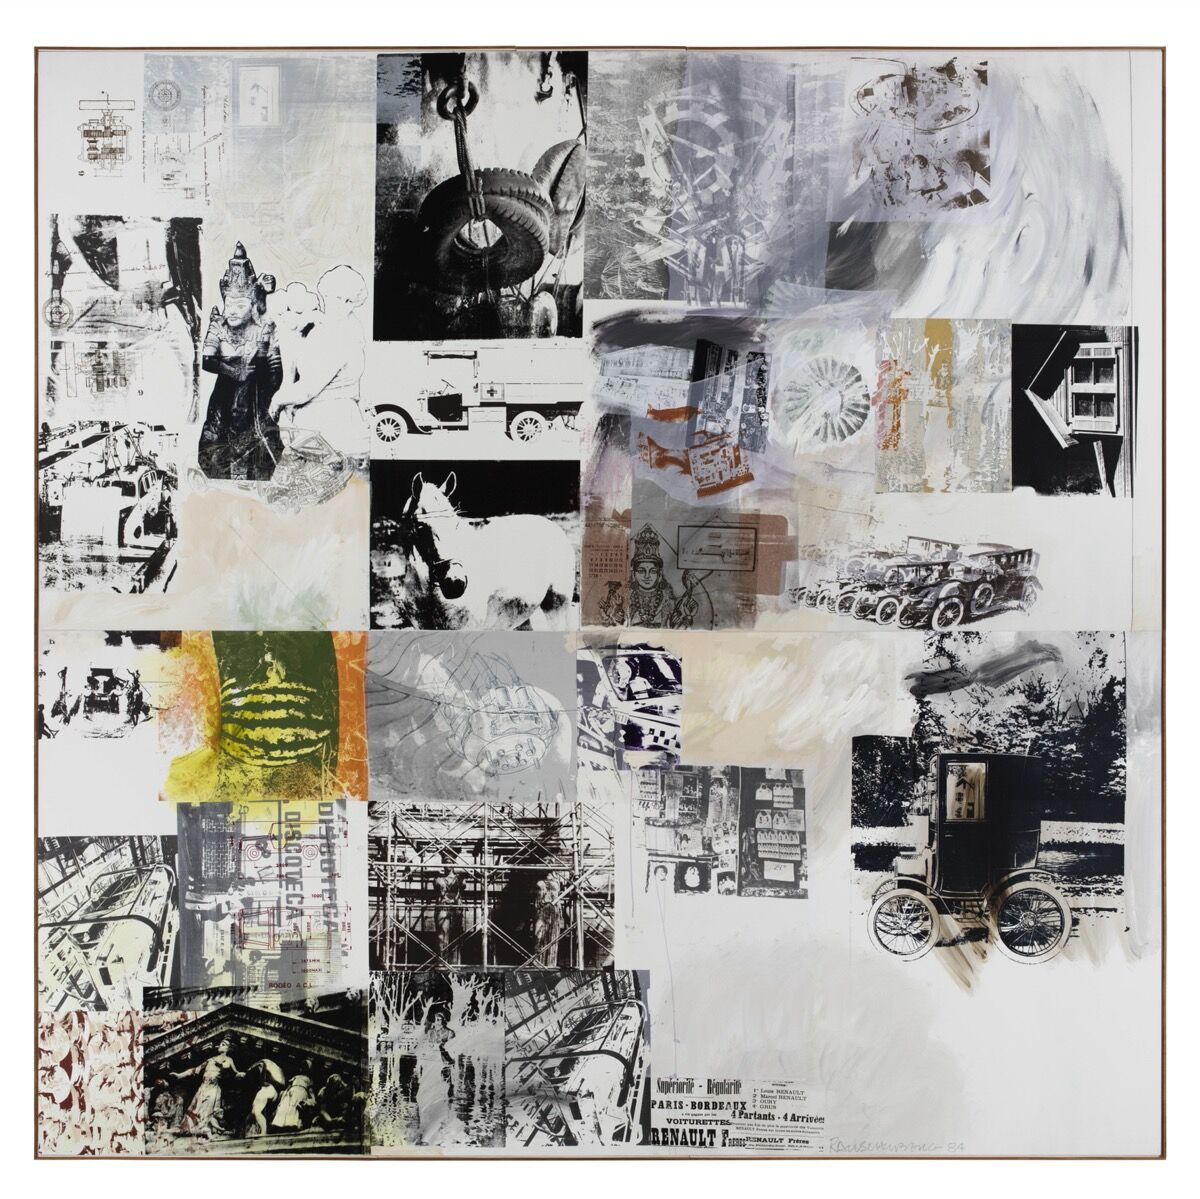 Robert Rauschenberg, Rollings (Salvage), 1984. Courtesy of Thaddaeus Ropac.